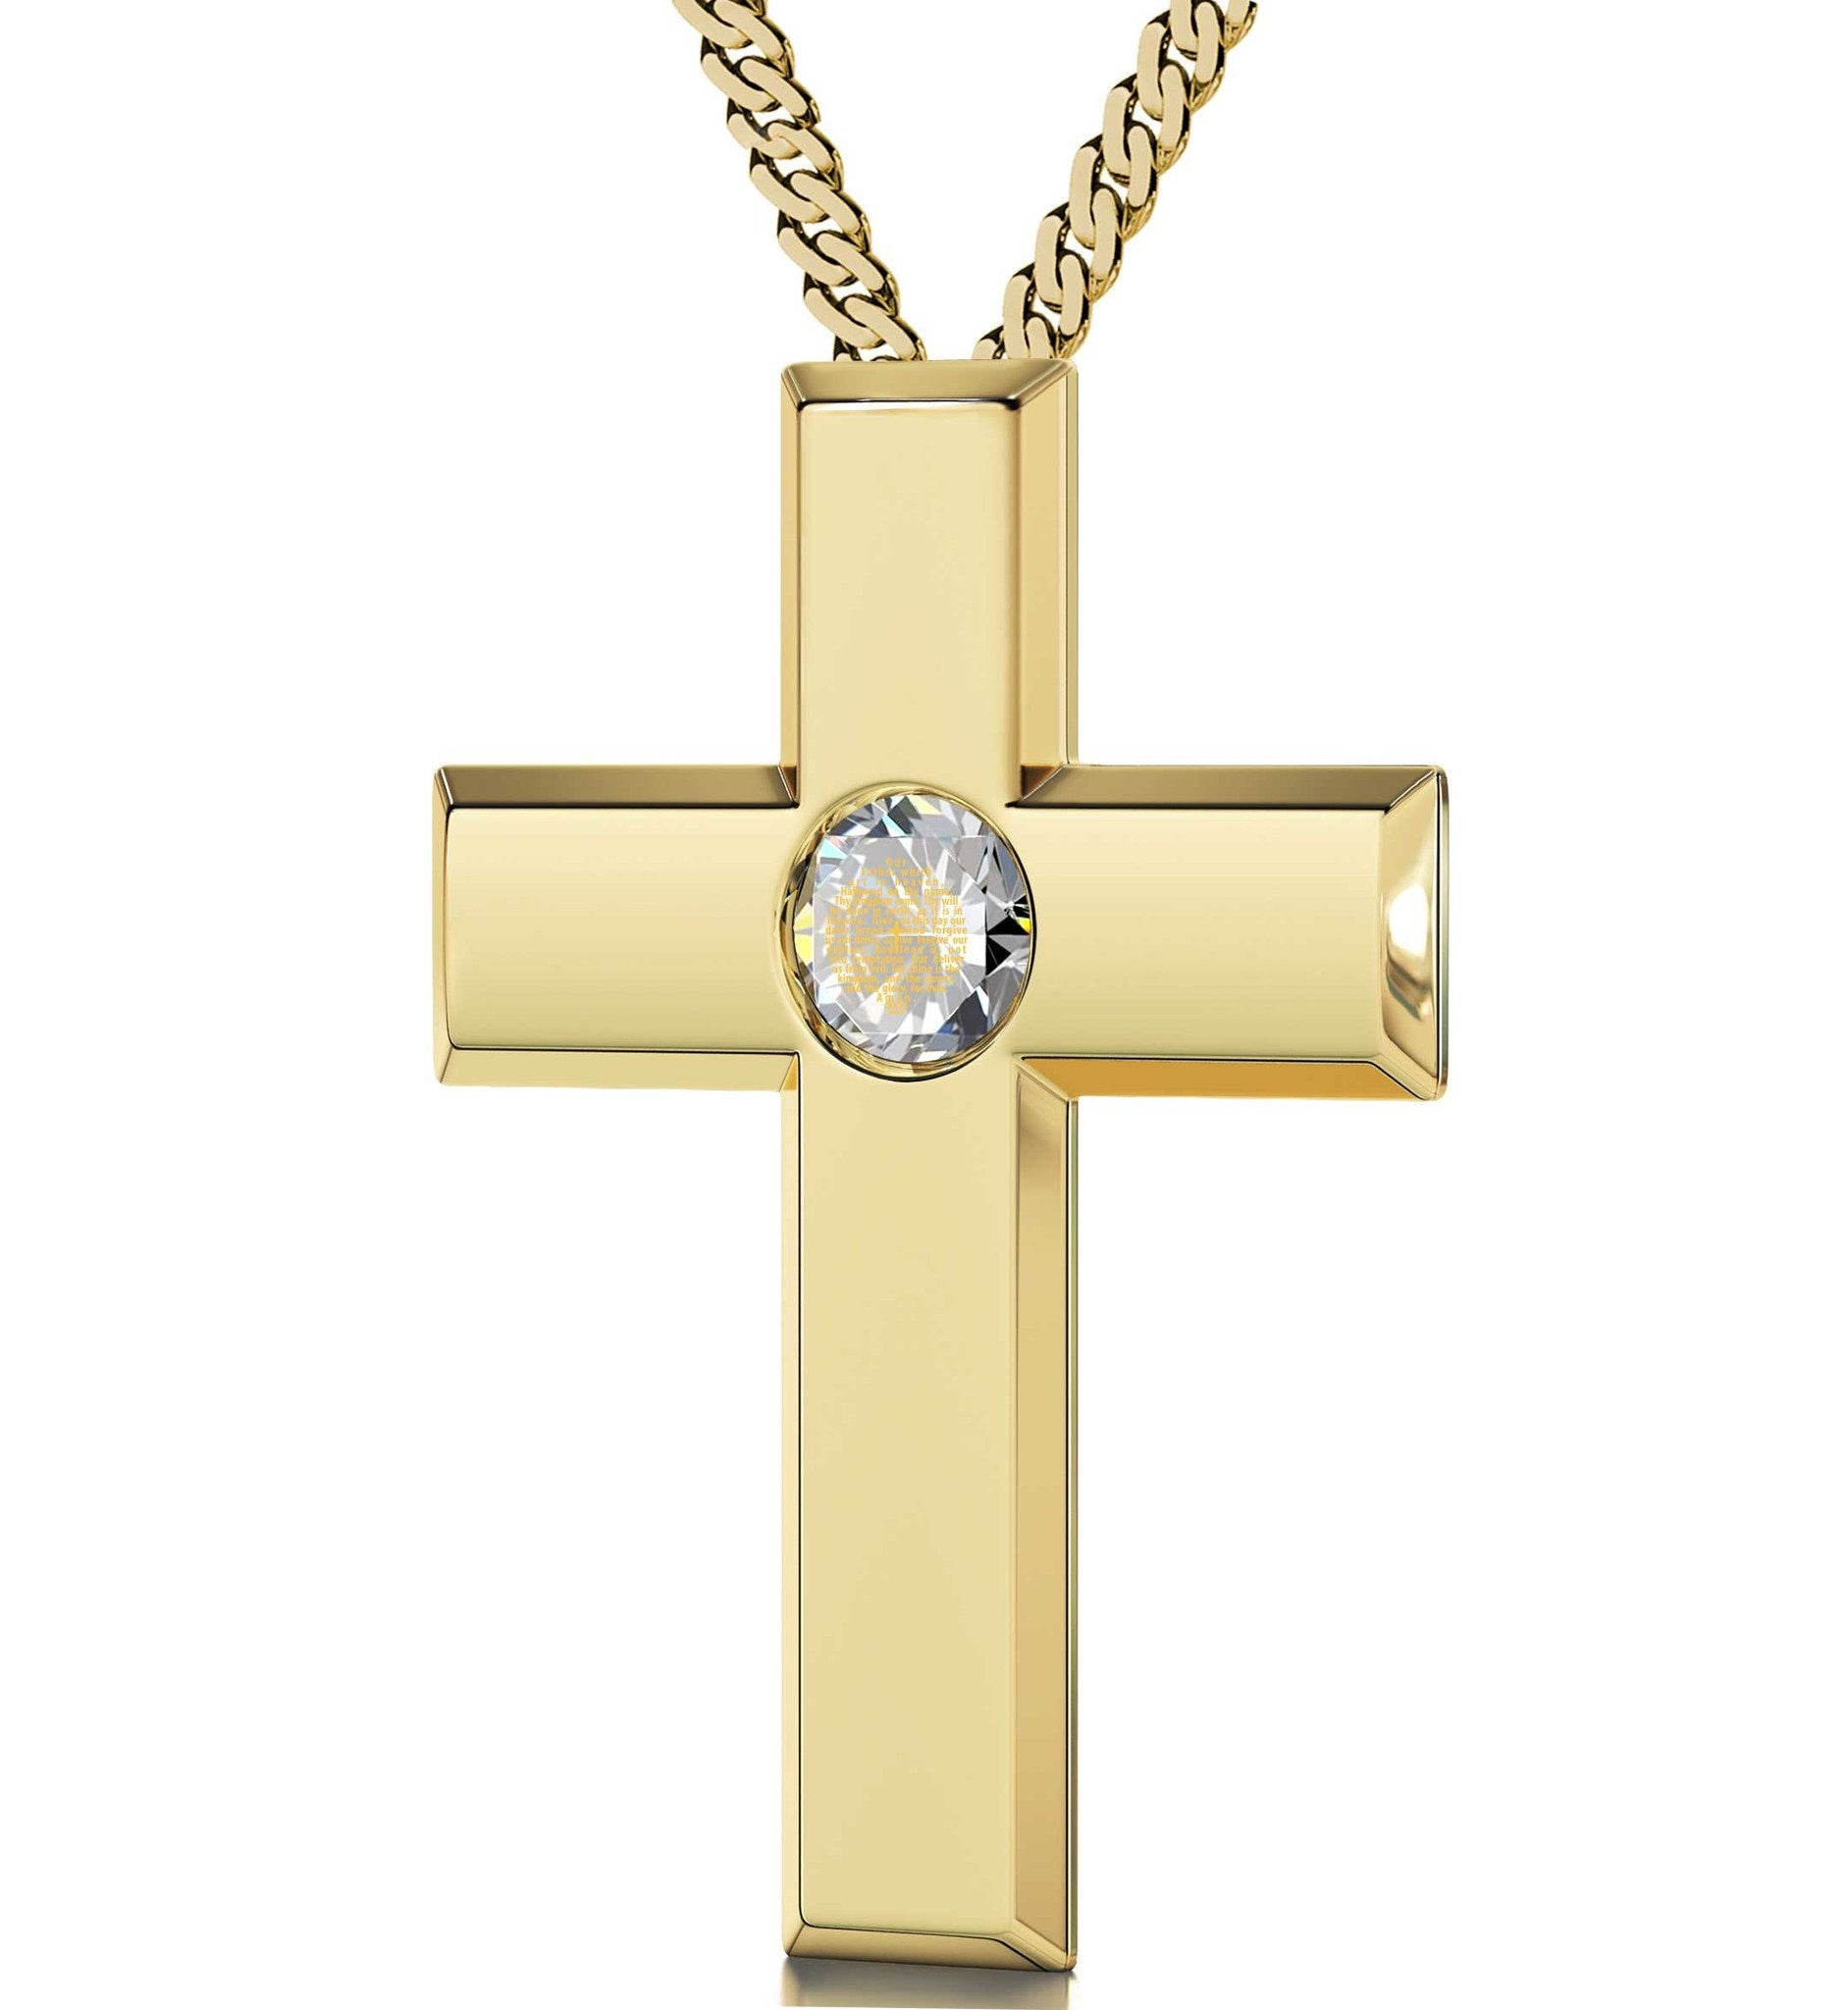 23 Kjv Cute Necklaces For Her Religious Gifts For Women Jewelry With Meaning